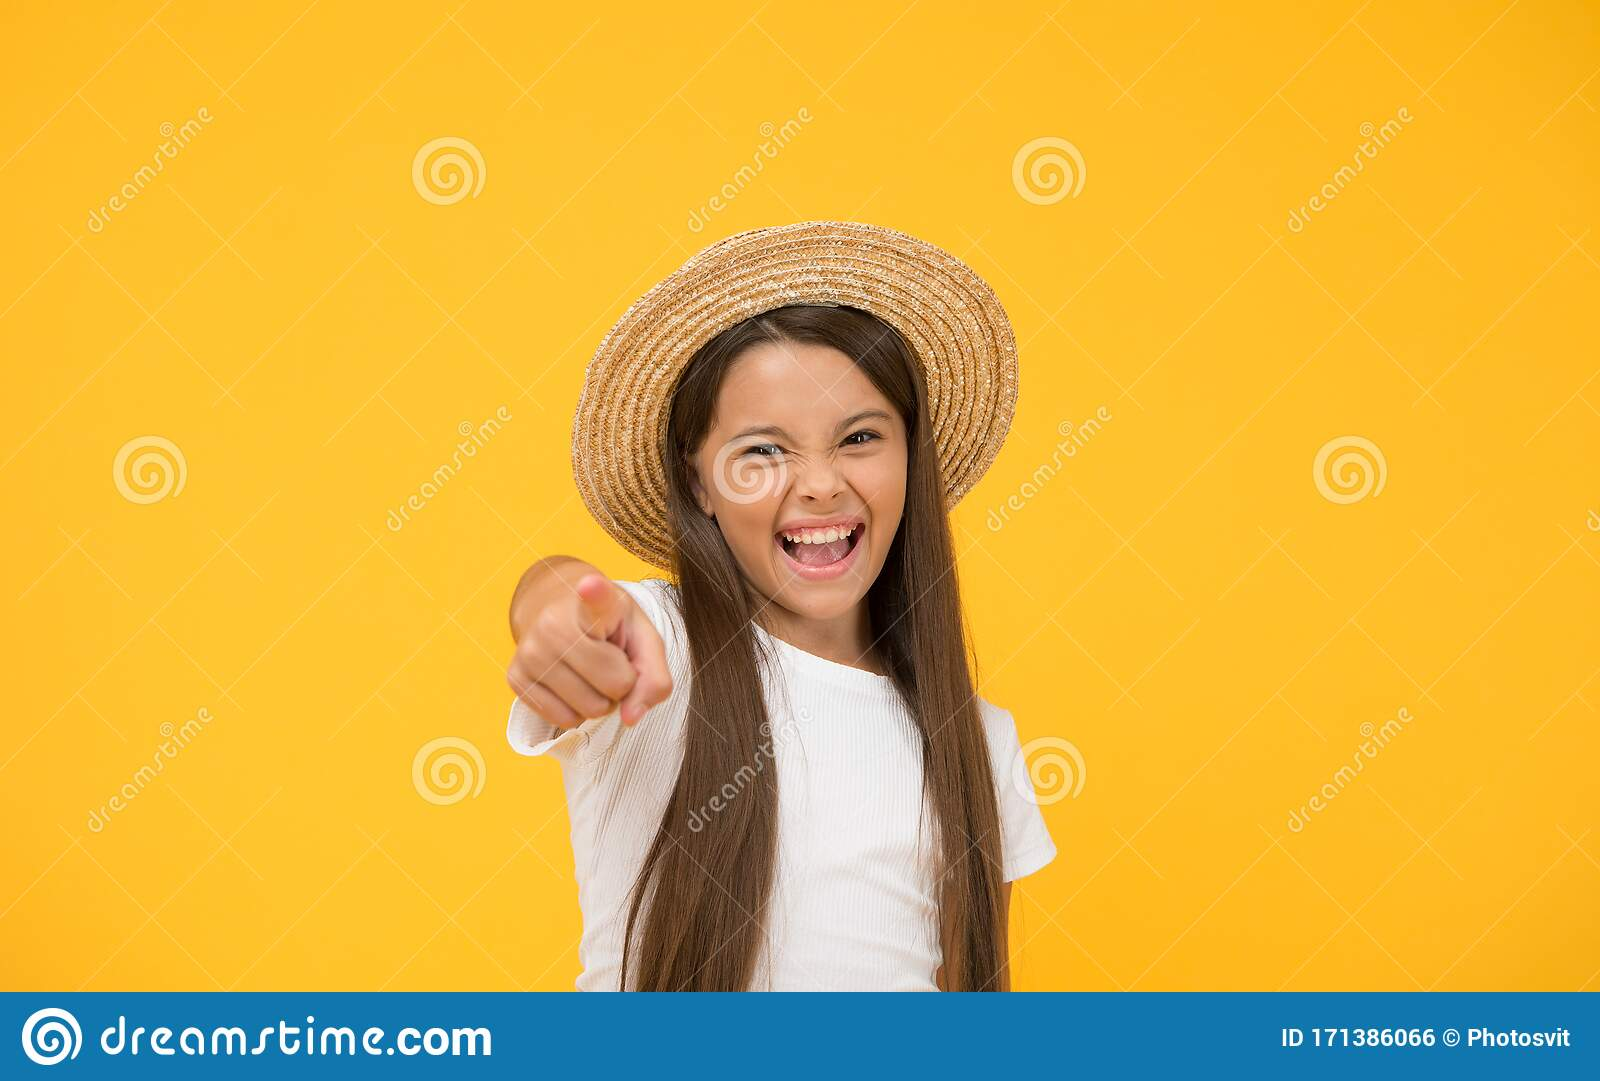 Teen Girl Summer Fashion Beach Style For Kids Travel Wardrobe Best Summer Hats To Shop Hats Are Chic And Great Way Stock Photo Image Of Emotions Background 171386066